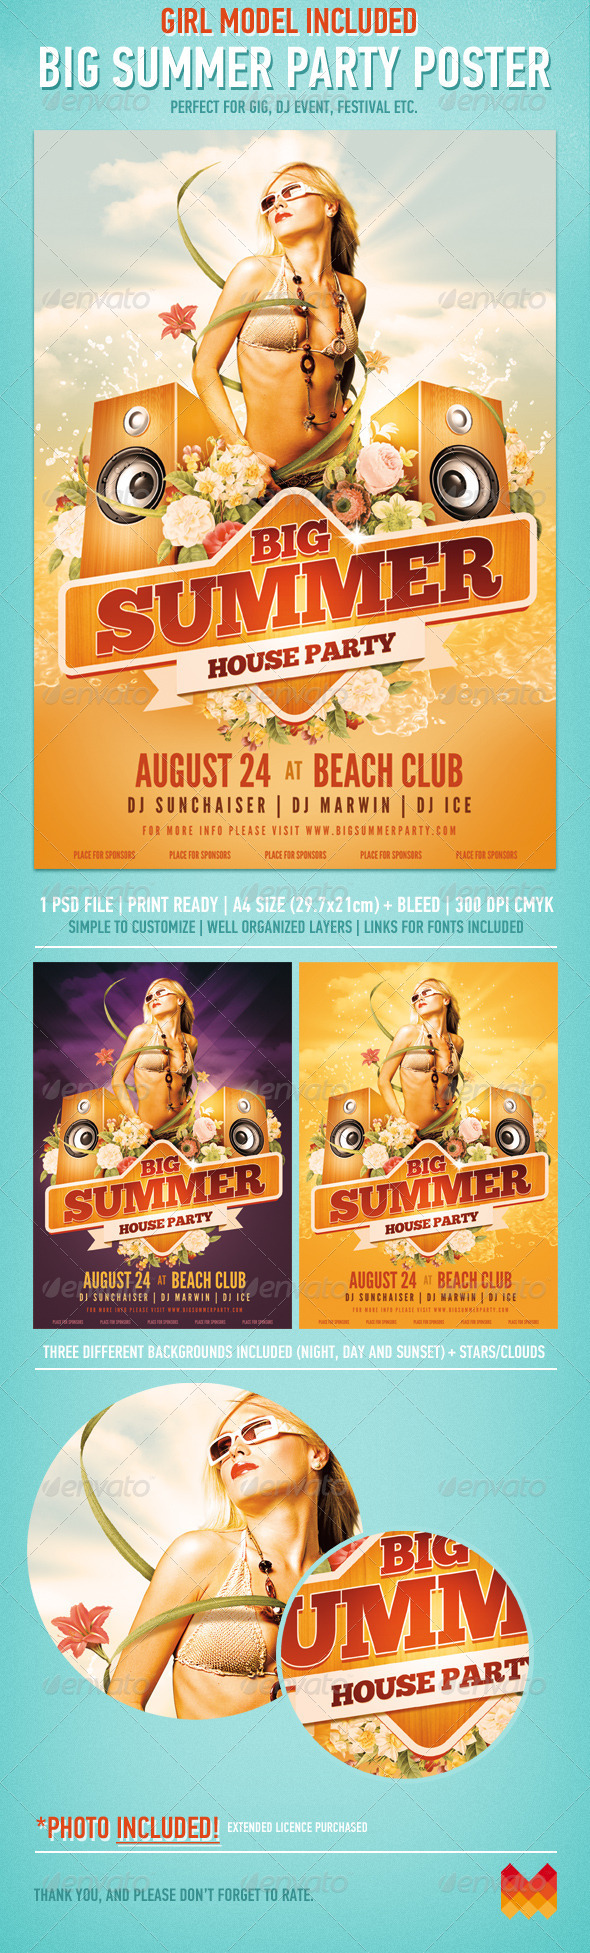 Big Summer Party Poster - Events Flyers